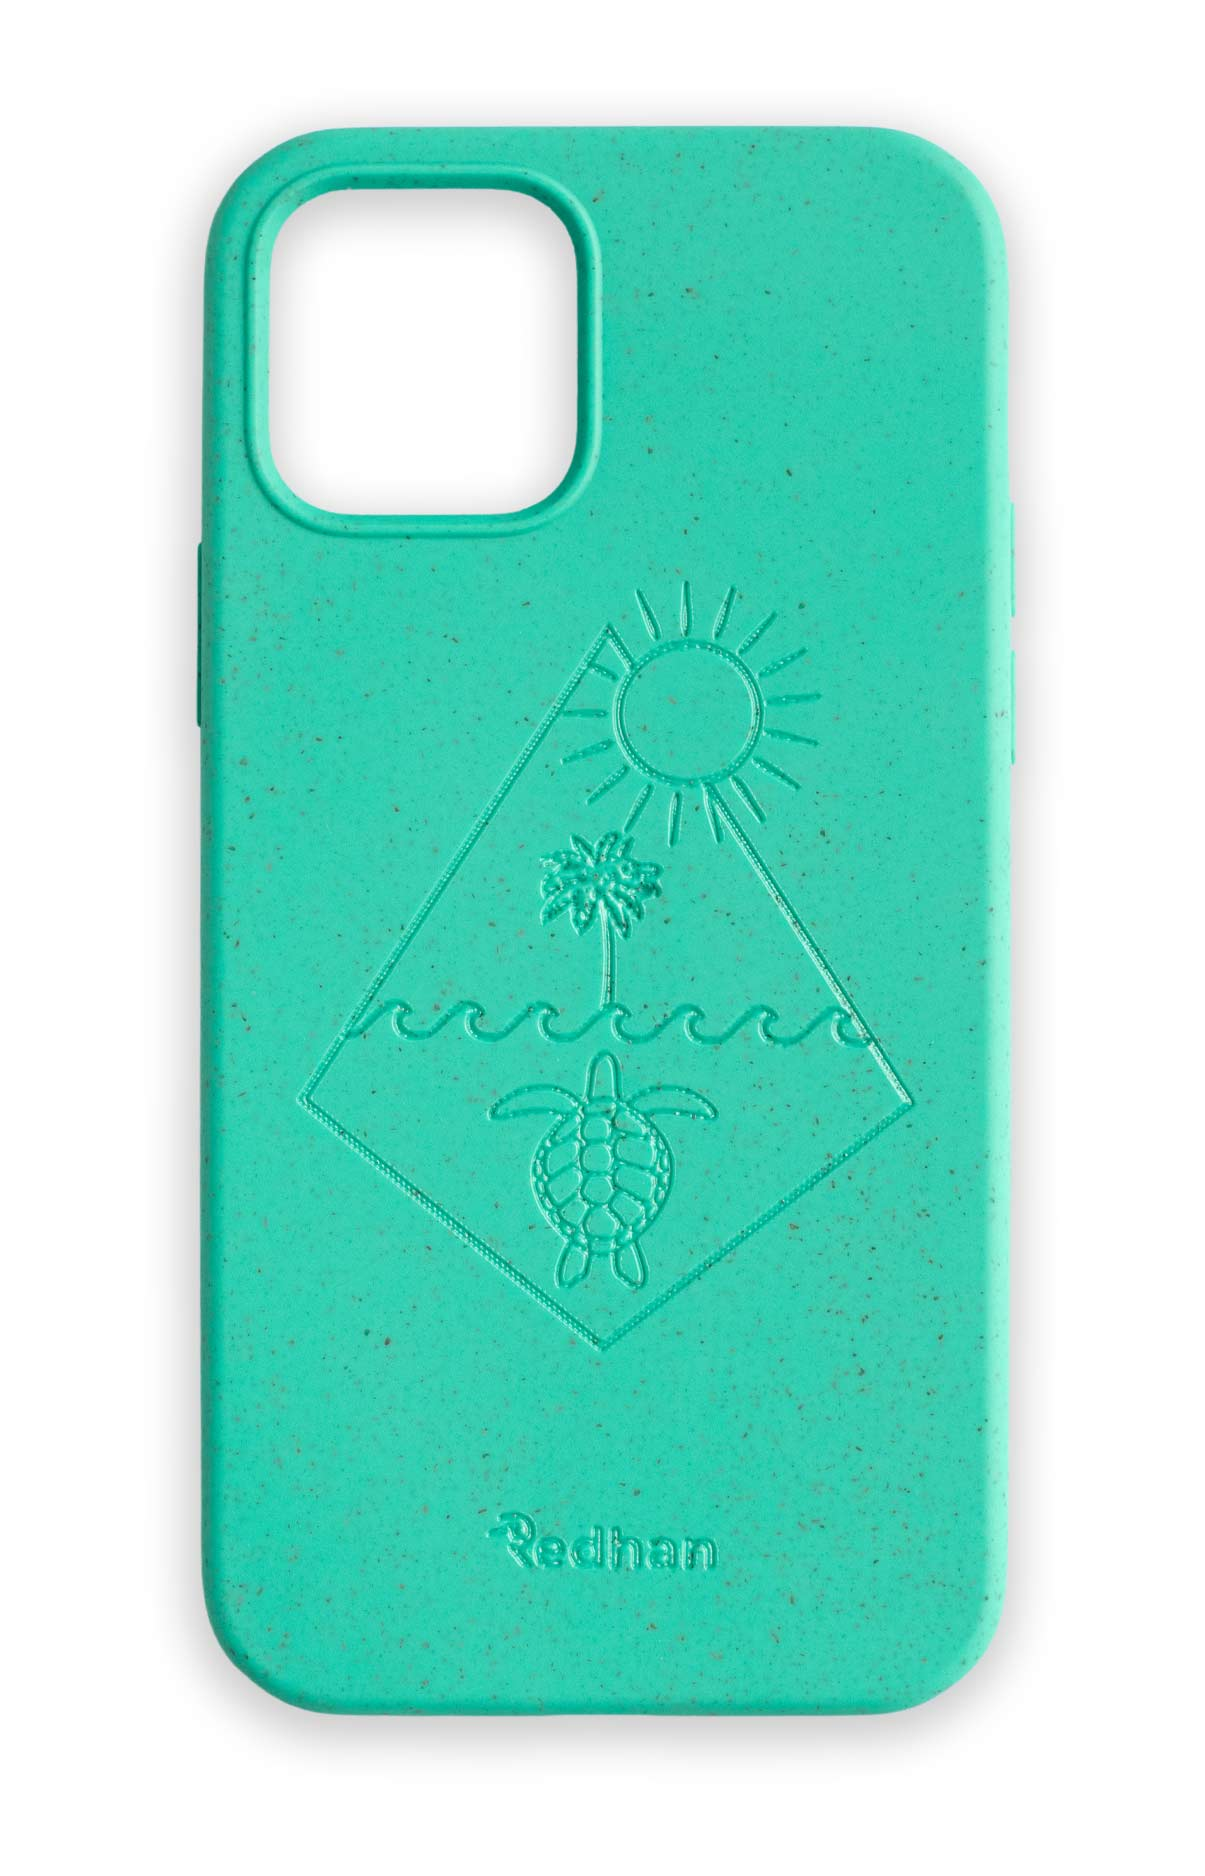 Eco Friendly iPhone 12 Mini Phone Case - Turtle 2.0 in Turquoise